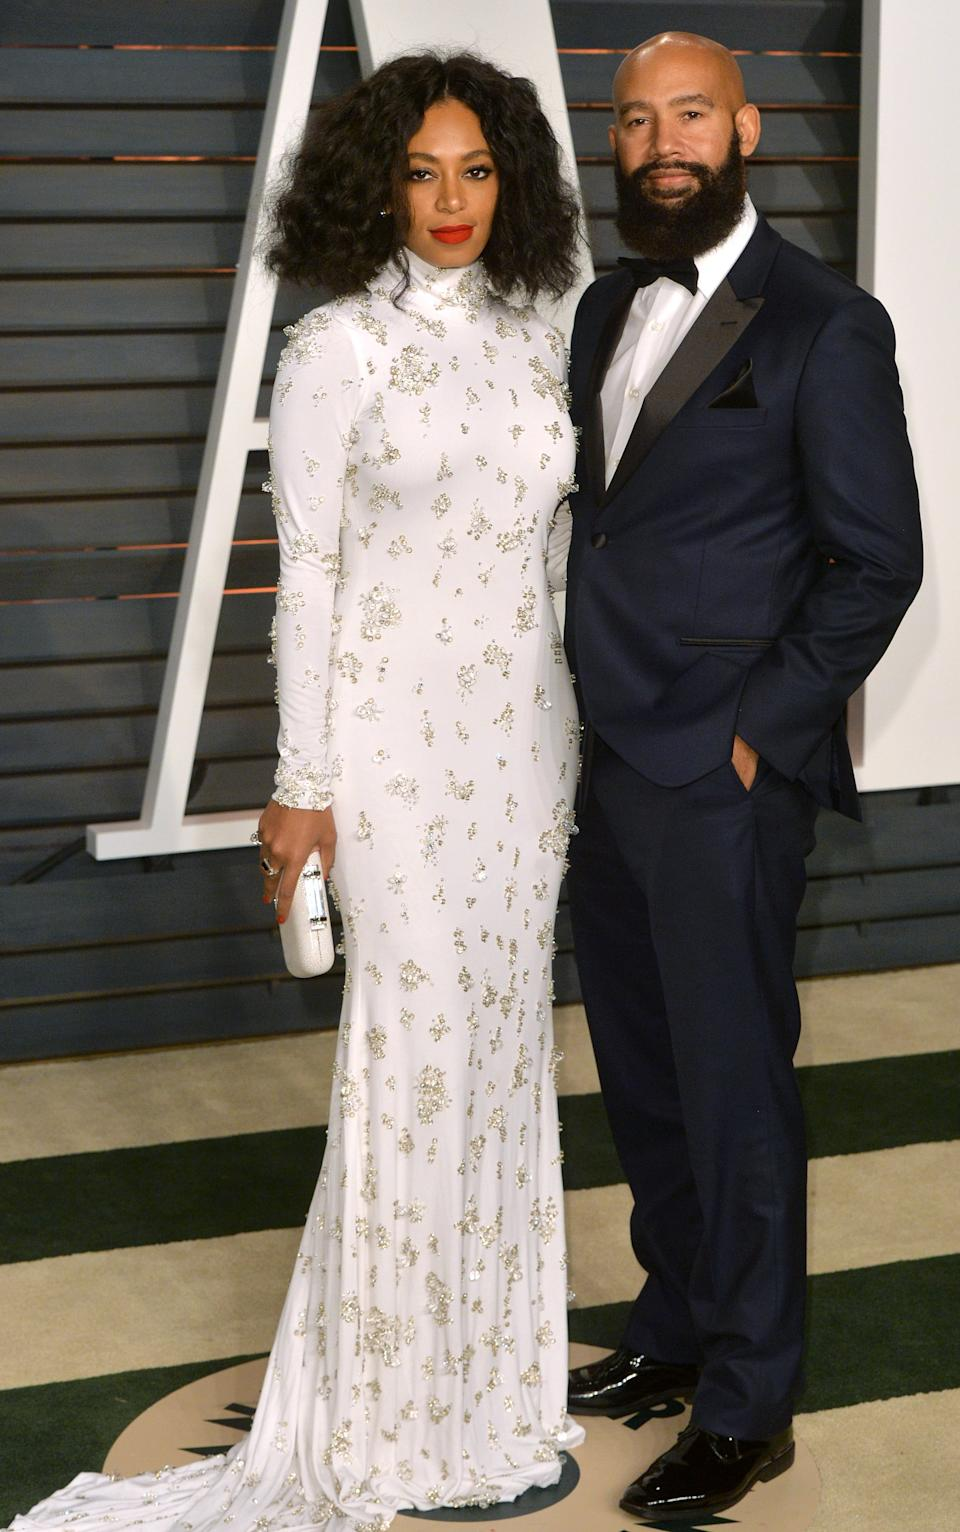 BEVERLY HILLS, CA - FEBRUARY 22:  Solange Knowles and Alan Ferguson arrive at the 2015 Vanity Fair Oscar Party Hosted By Graydon Carter at Wallis Annenberg Center for the Performing Arts on February 22, 2015 in Beverly Hills, California.  (Photo by Anthony Harvey/Getty Images)